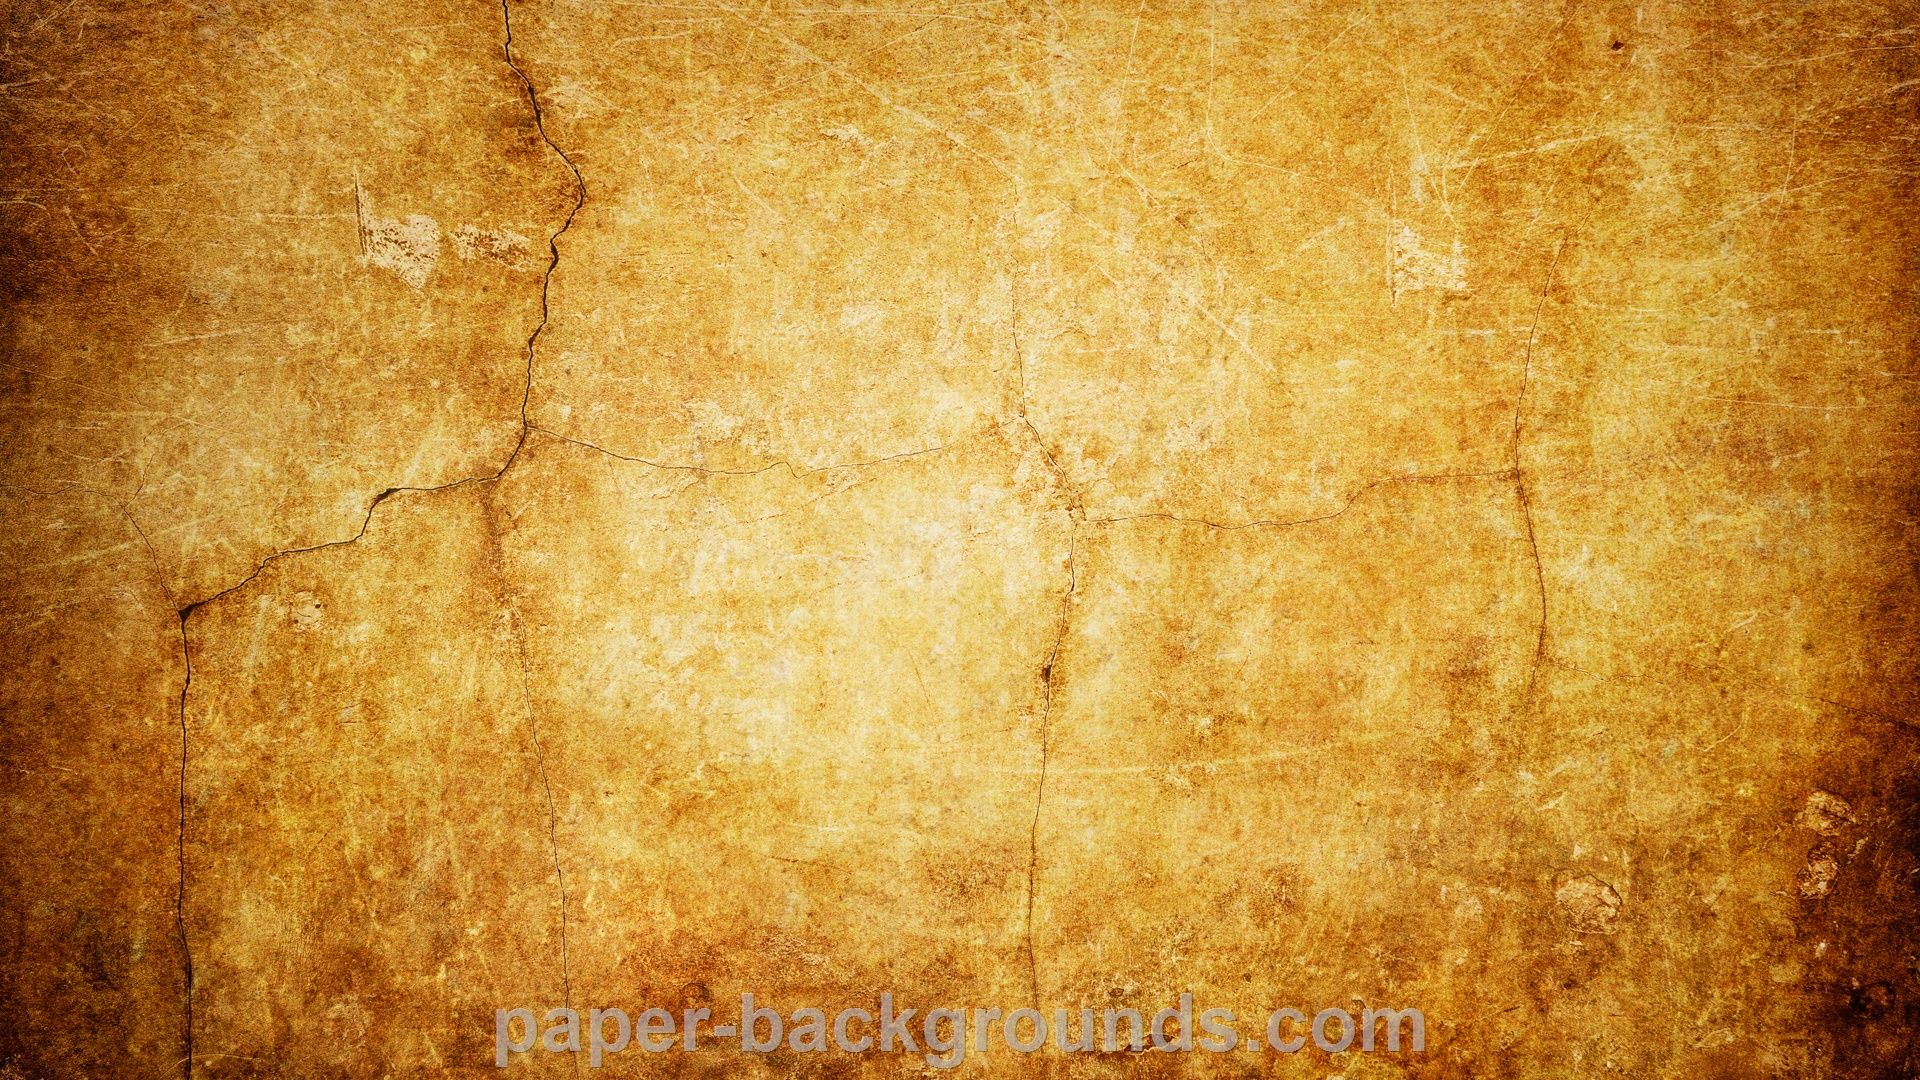 Vintage Wall Texture Background Hd Paper Backgrounds